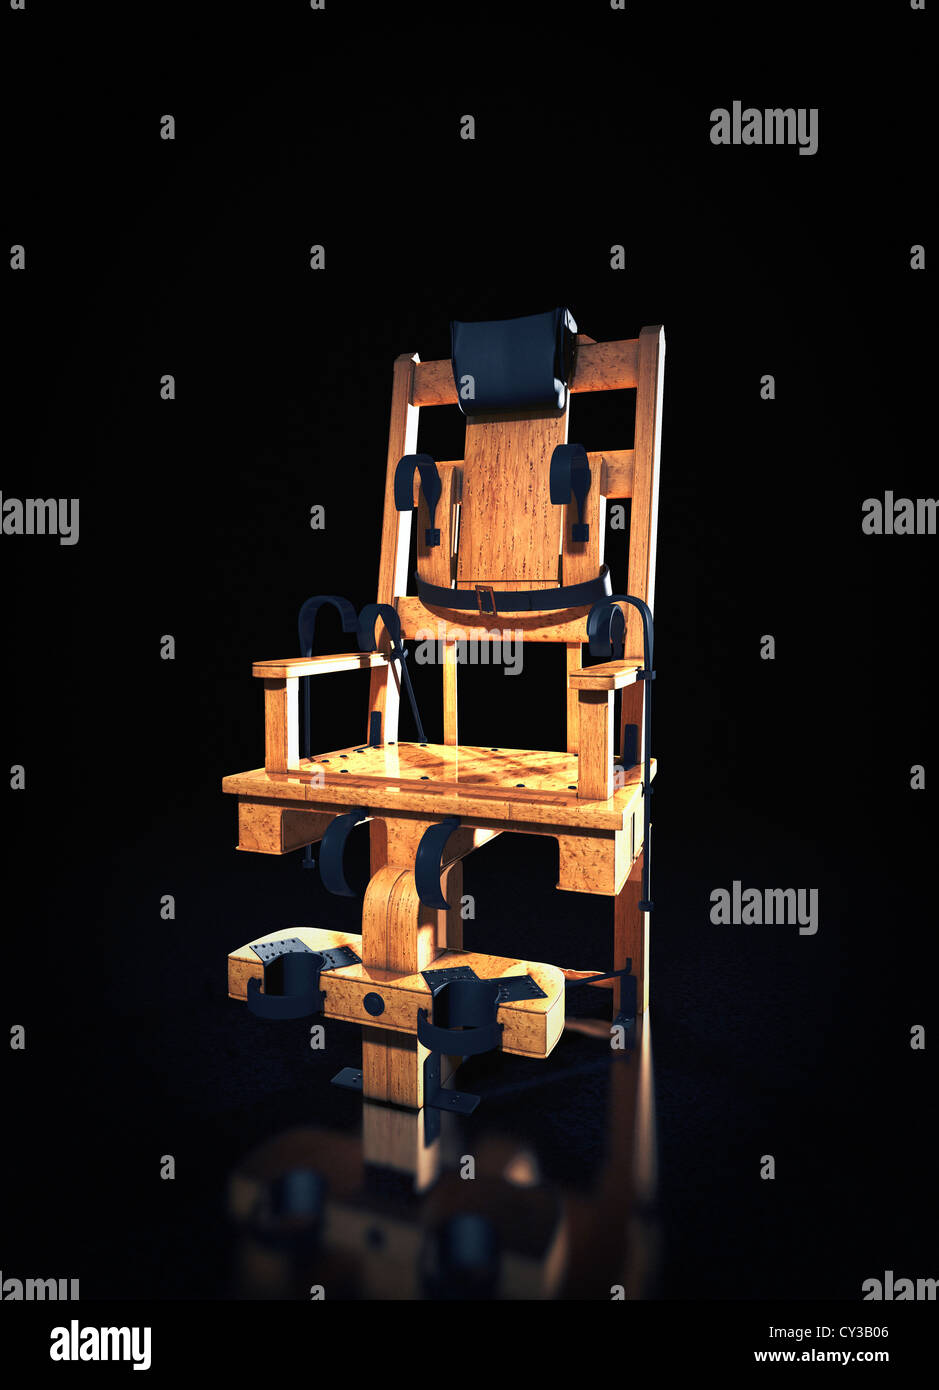 The electric chair execution - Execution Electric Chair